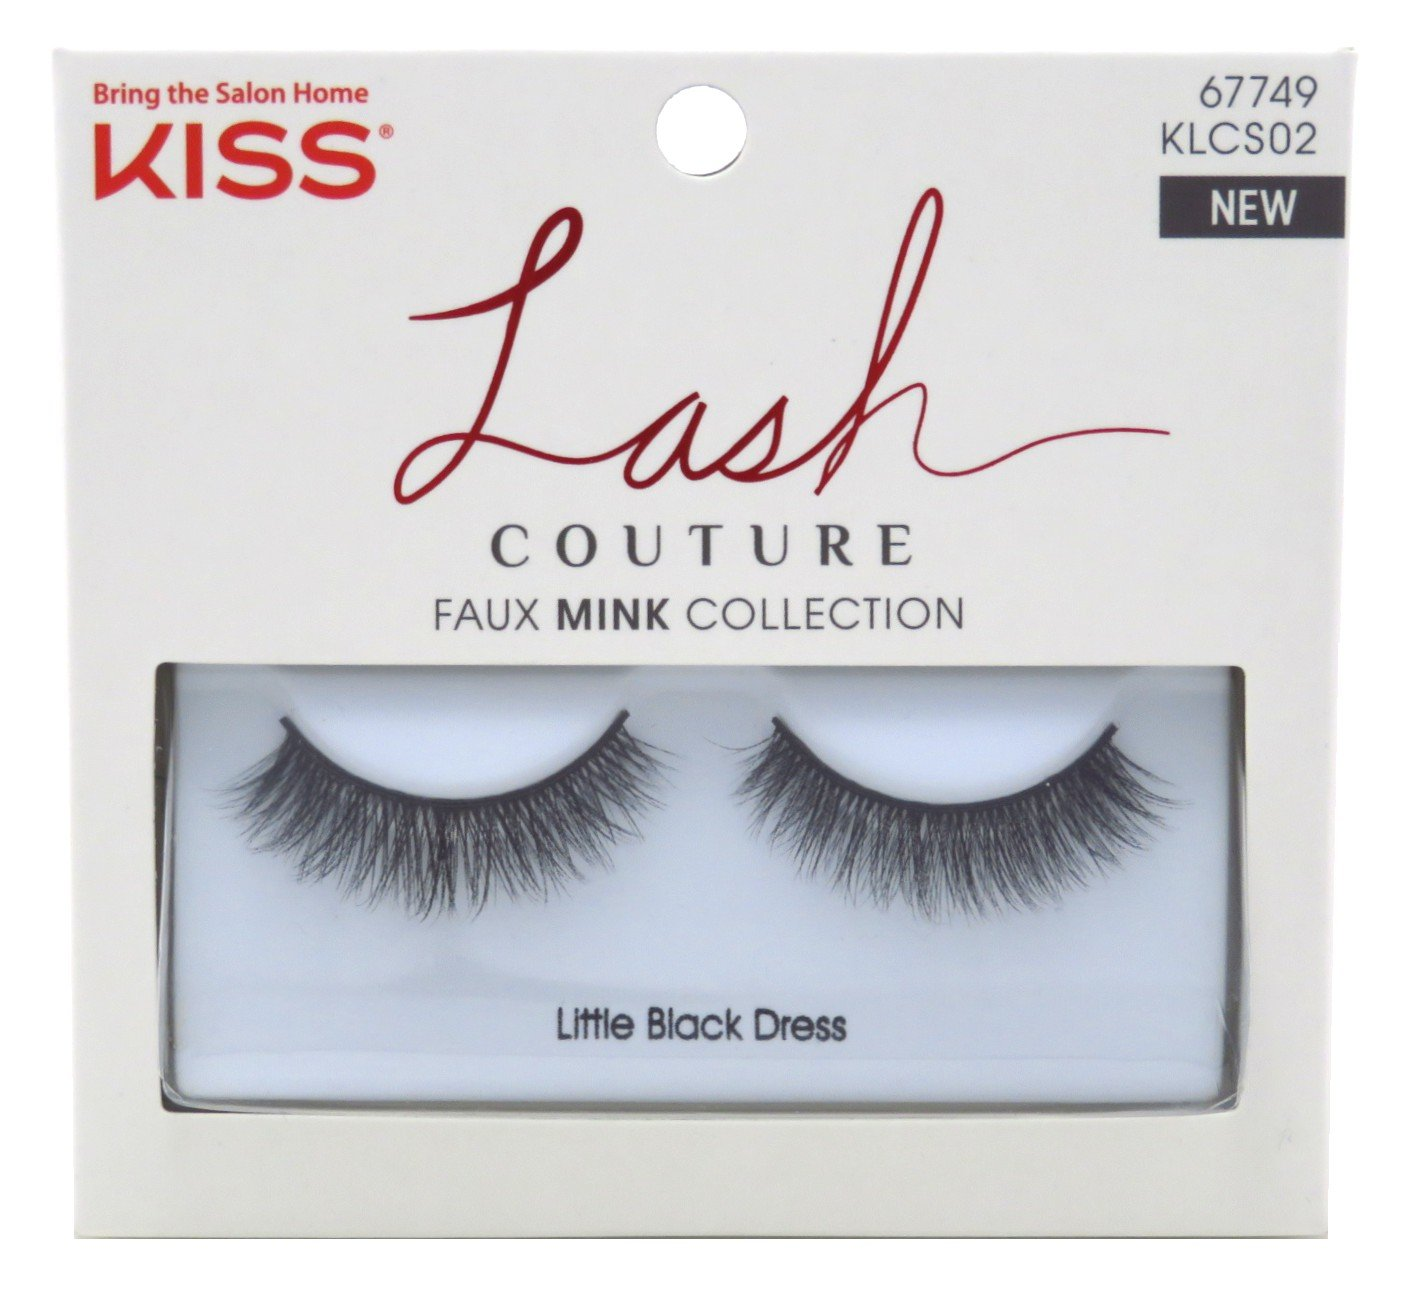 Kiss Lash Couture Faux Mink Collection - Little Black Dress Eyelashes